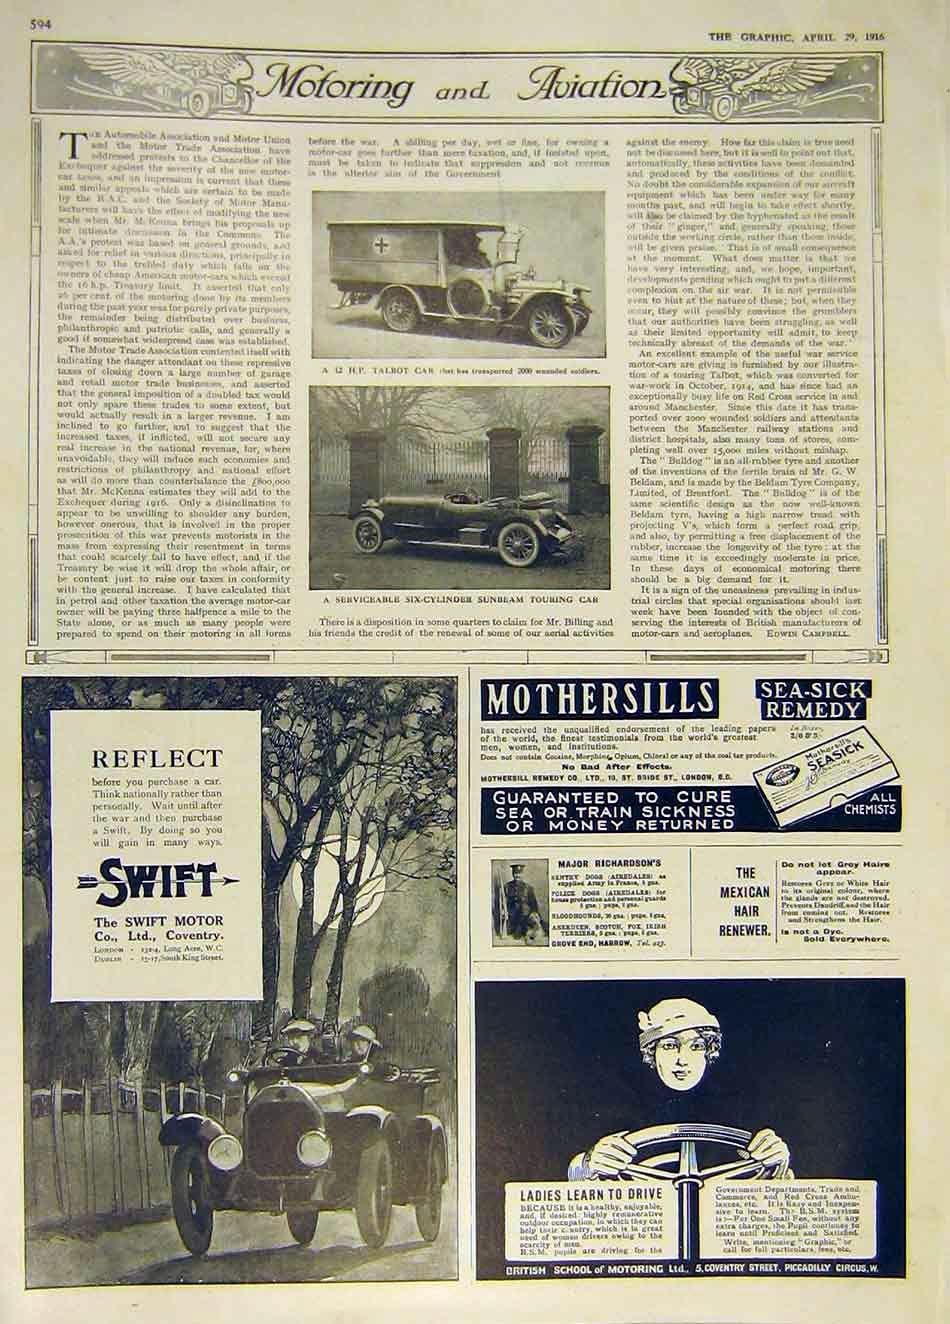 Print Talbot Car Red-Cross Sunbeam Swift Motor 1916 94Ddd0 Old Original